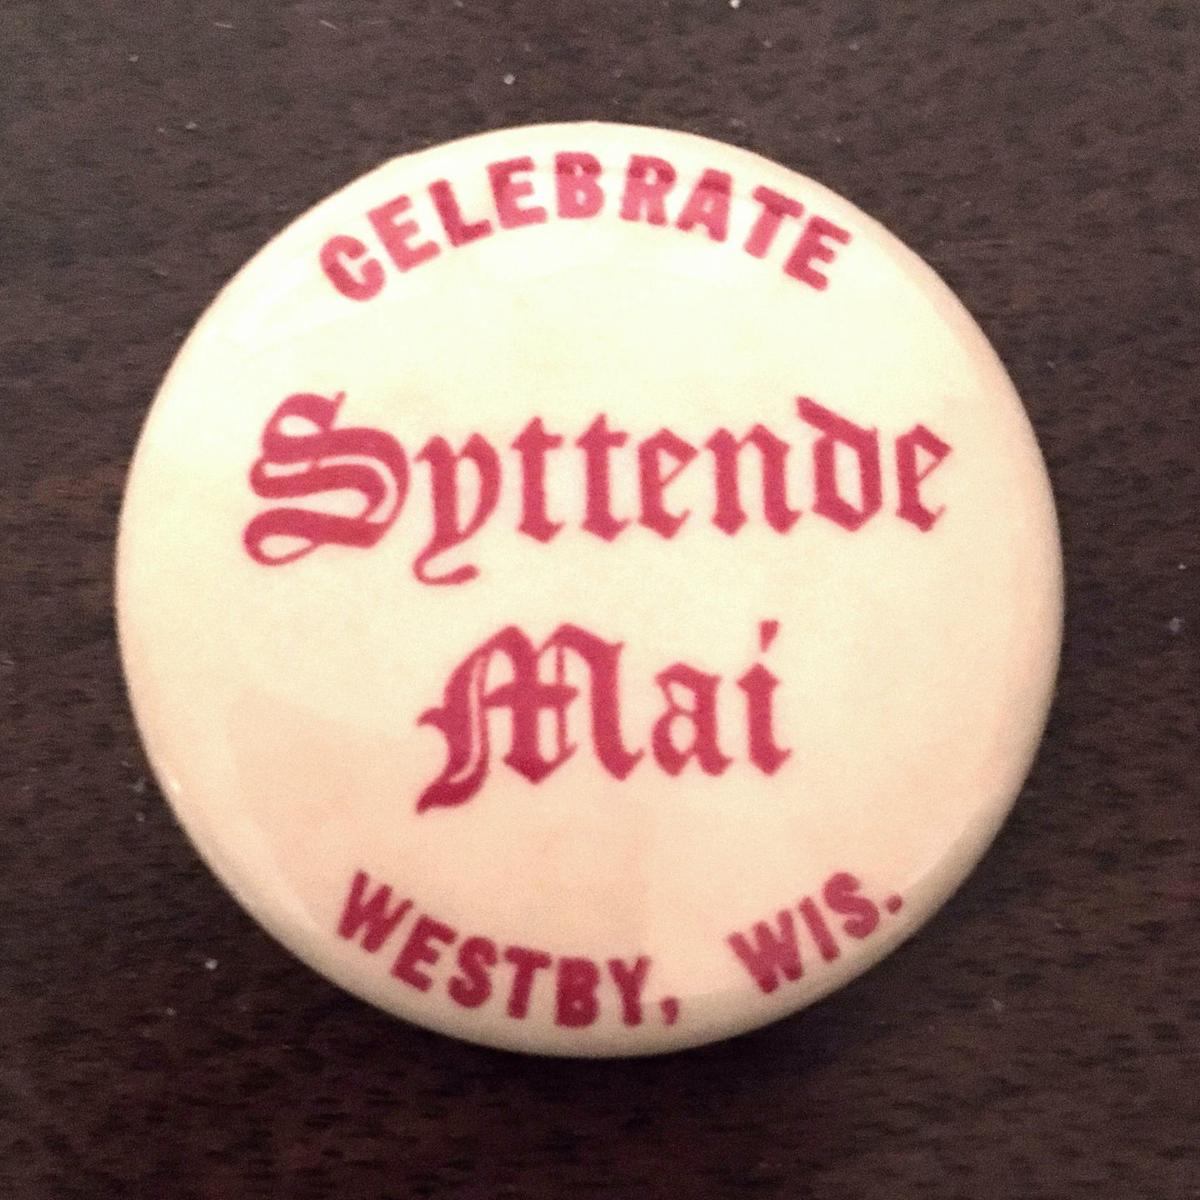 1969 Westby Syttende Mai button